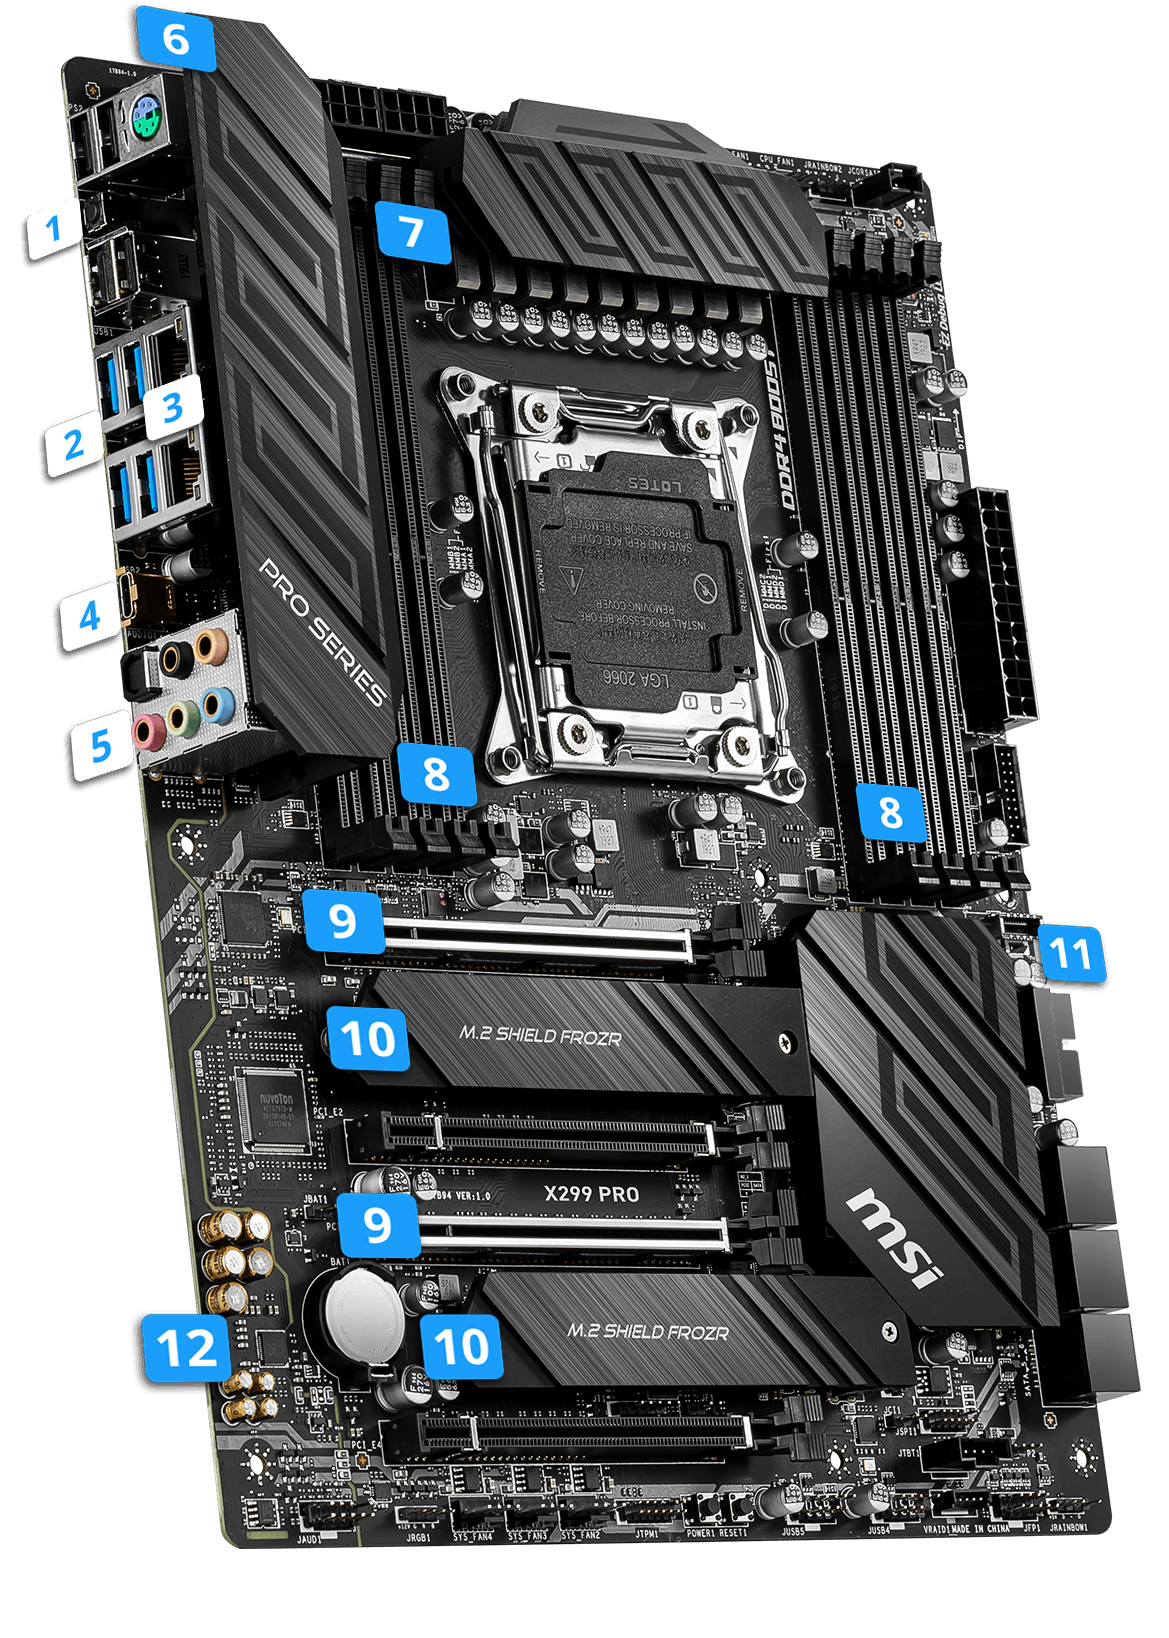 MSI X299 PRO overview